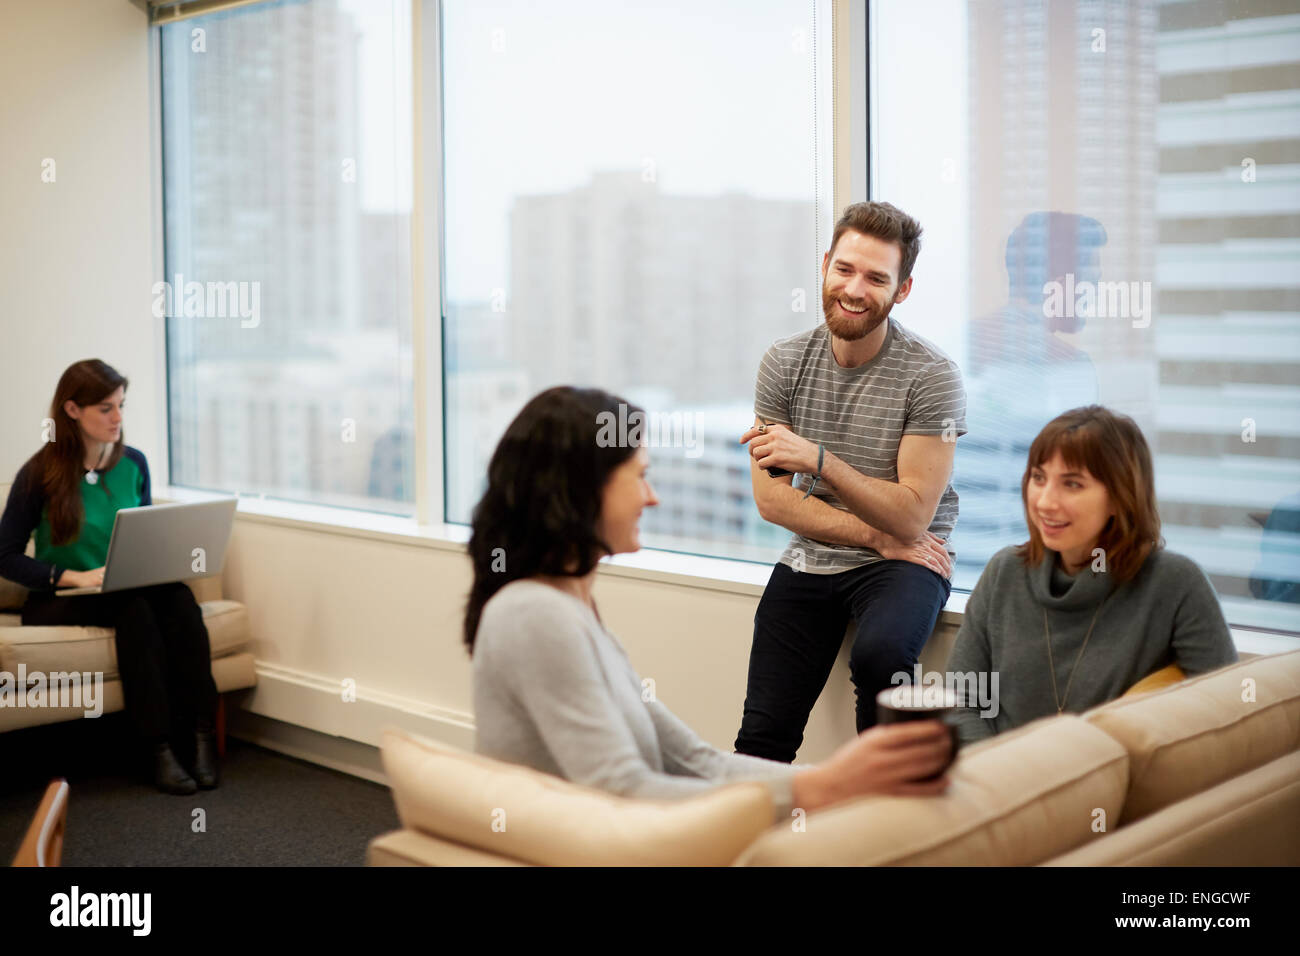 Three people by a window in an office, two women and a man. - Stock Image